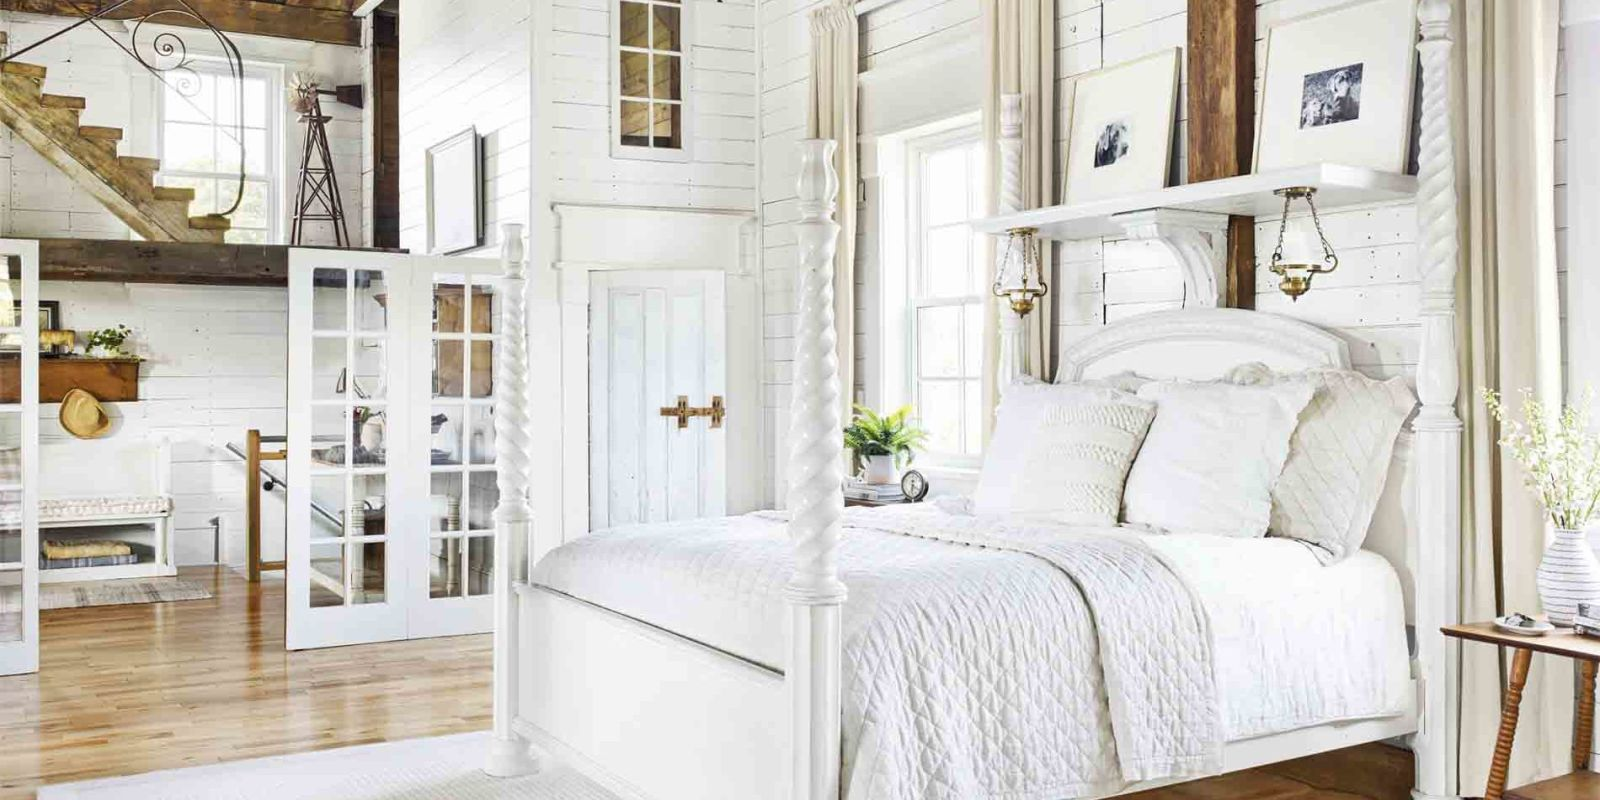 Best Rustic Bedroom Ideas Defined For High Inspiration: How To Decorate A White Bedroom